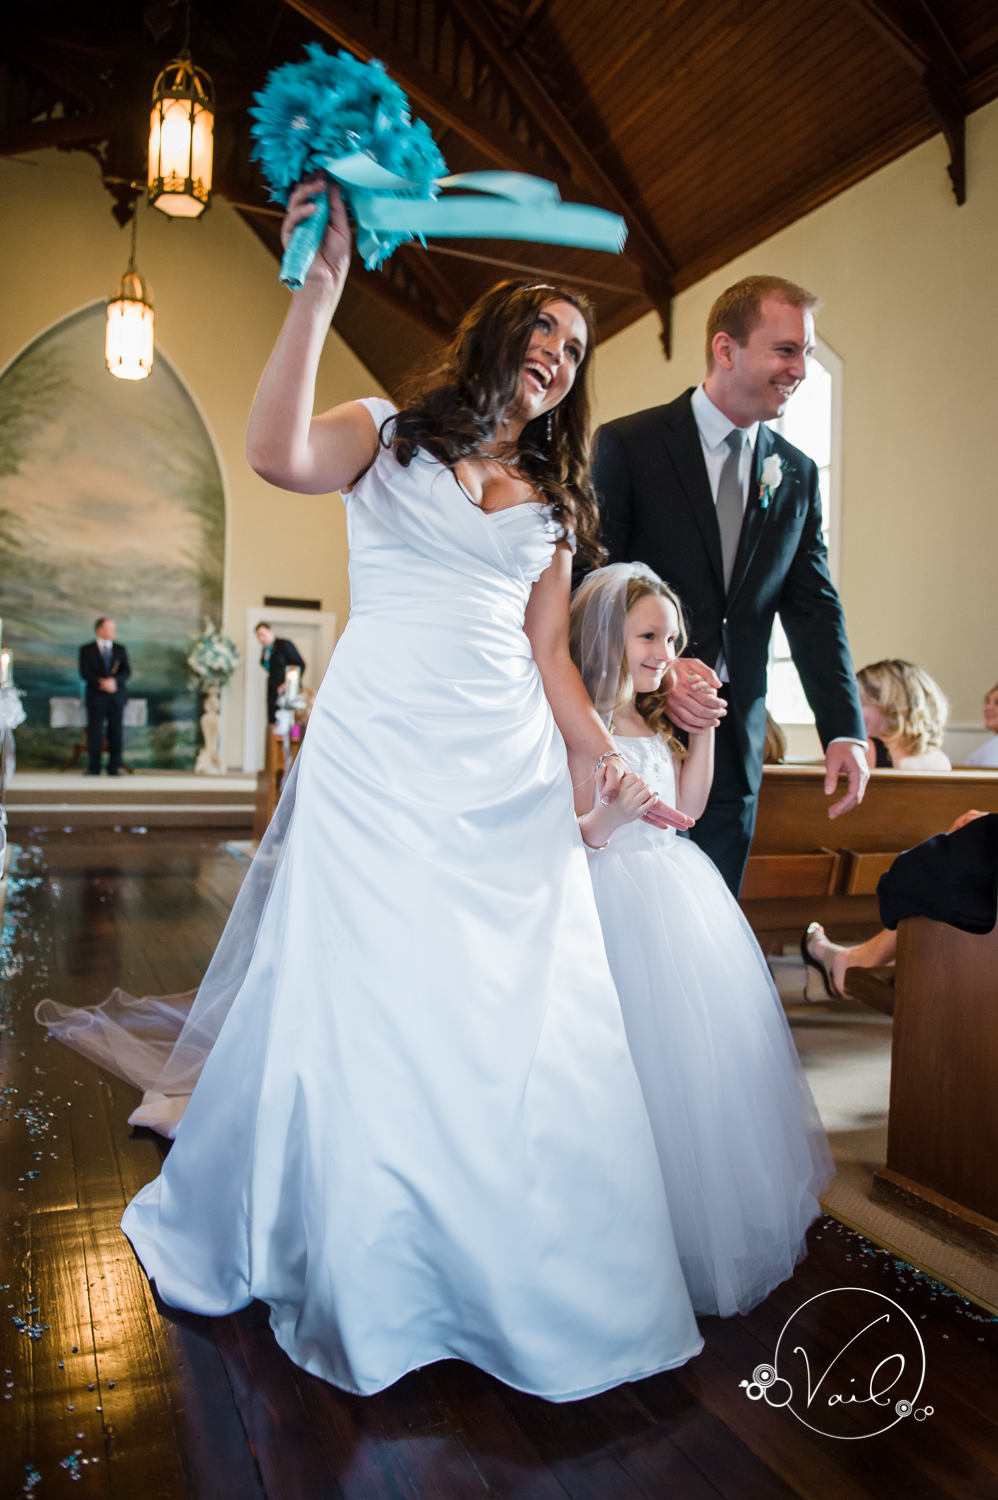 Belle Chapel Snohomish Wedding photographs by Vail Studio-33.jpg